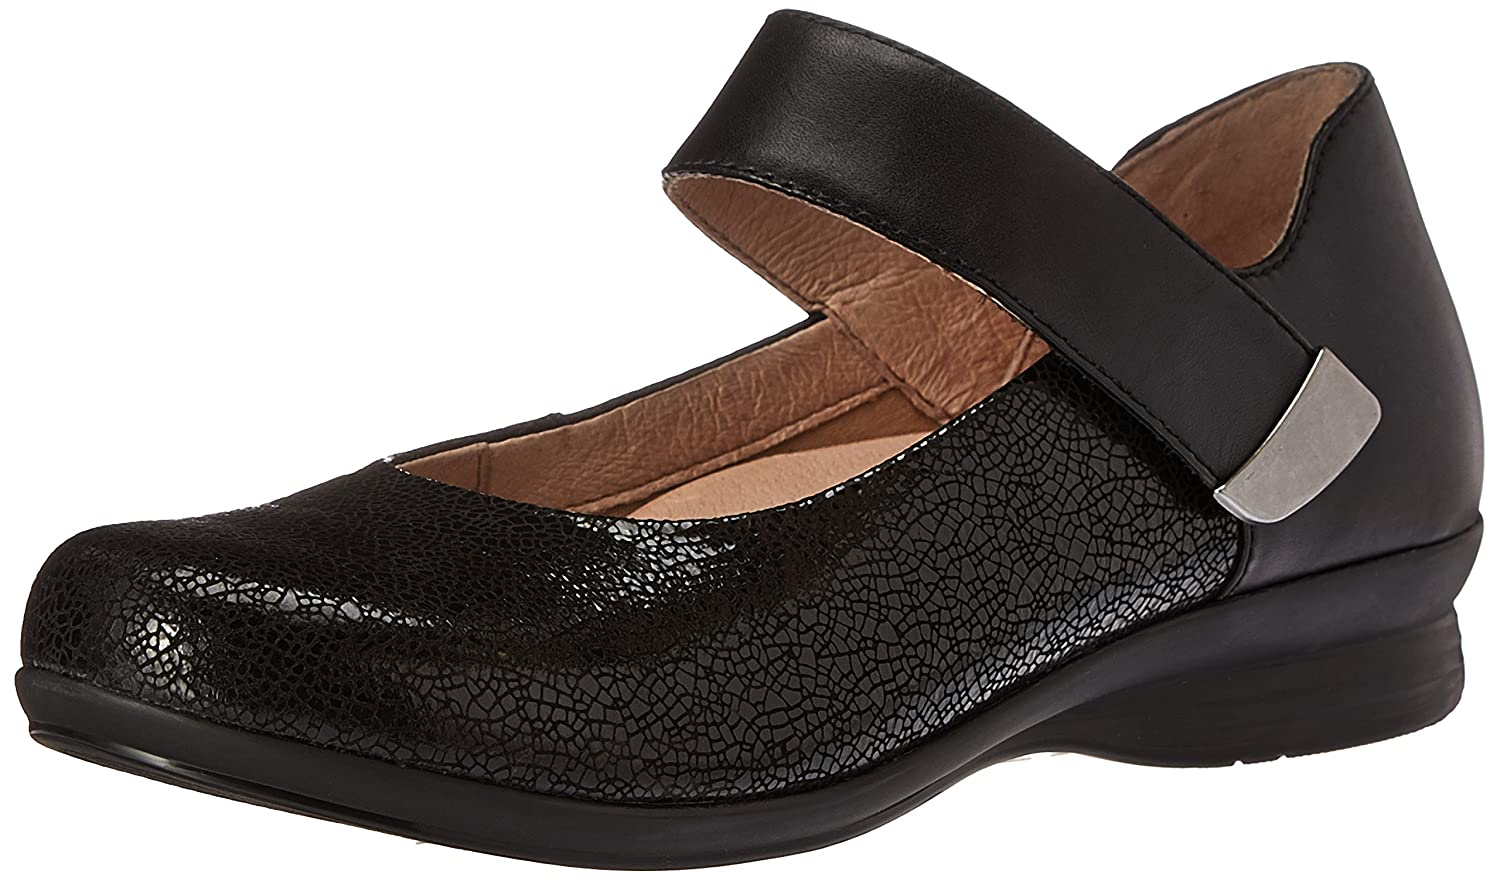 Dansko Women's Audrey Mary Jane Flat B01A02L8IK 37 EU/6.5-7 M US|Black Crackle